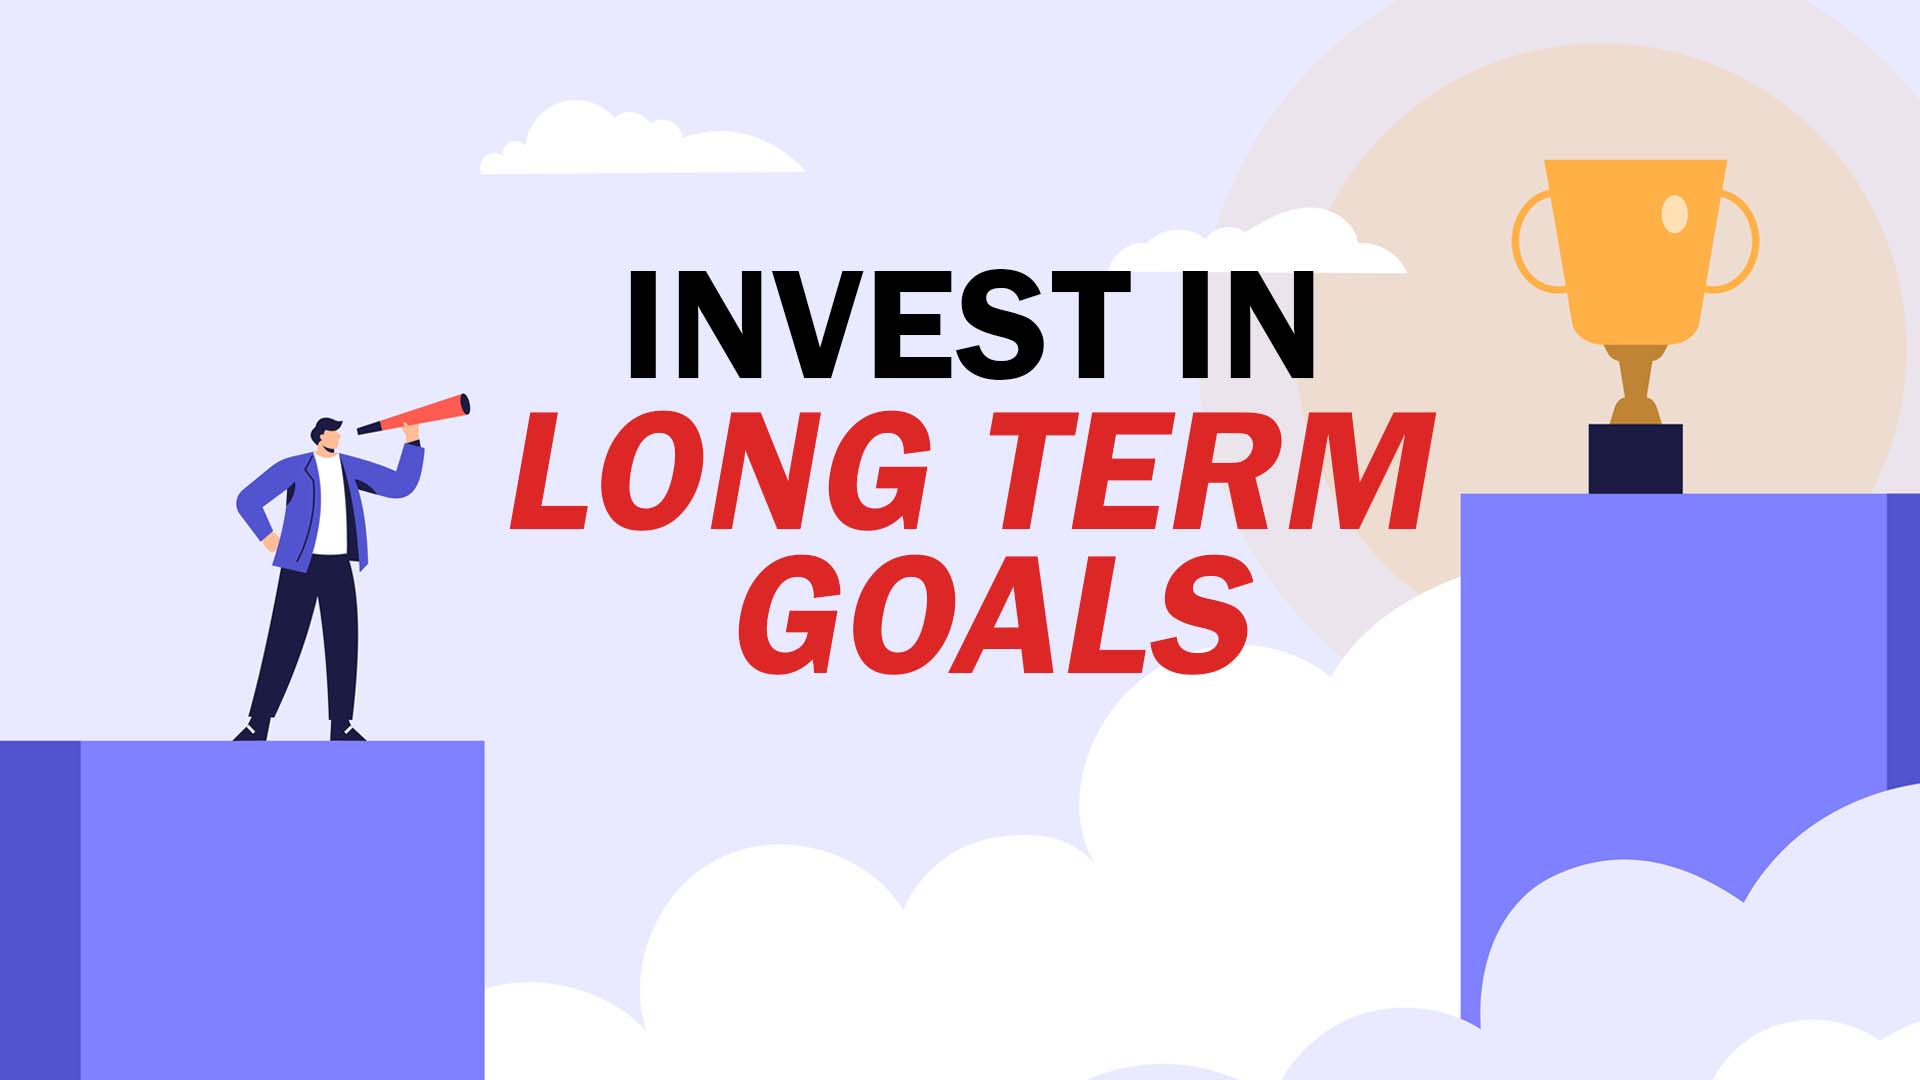 Invest in Long-Term Goals